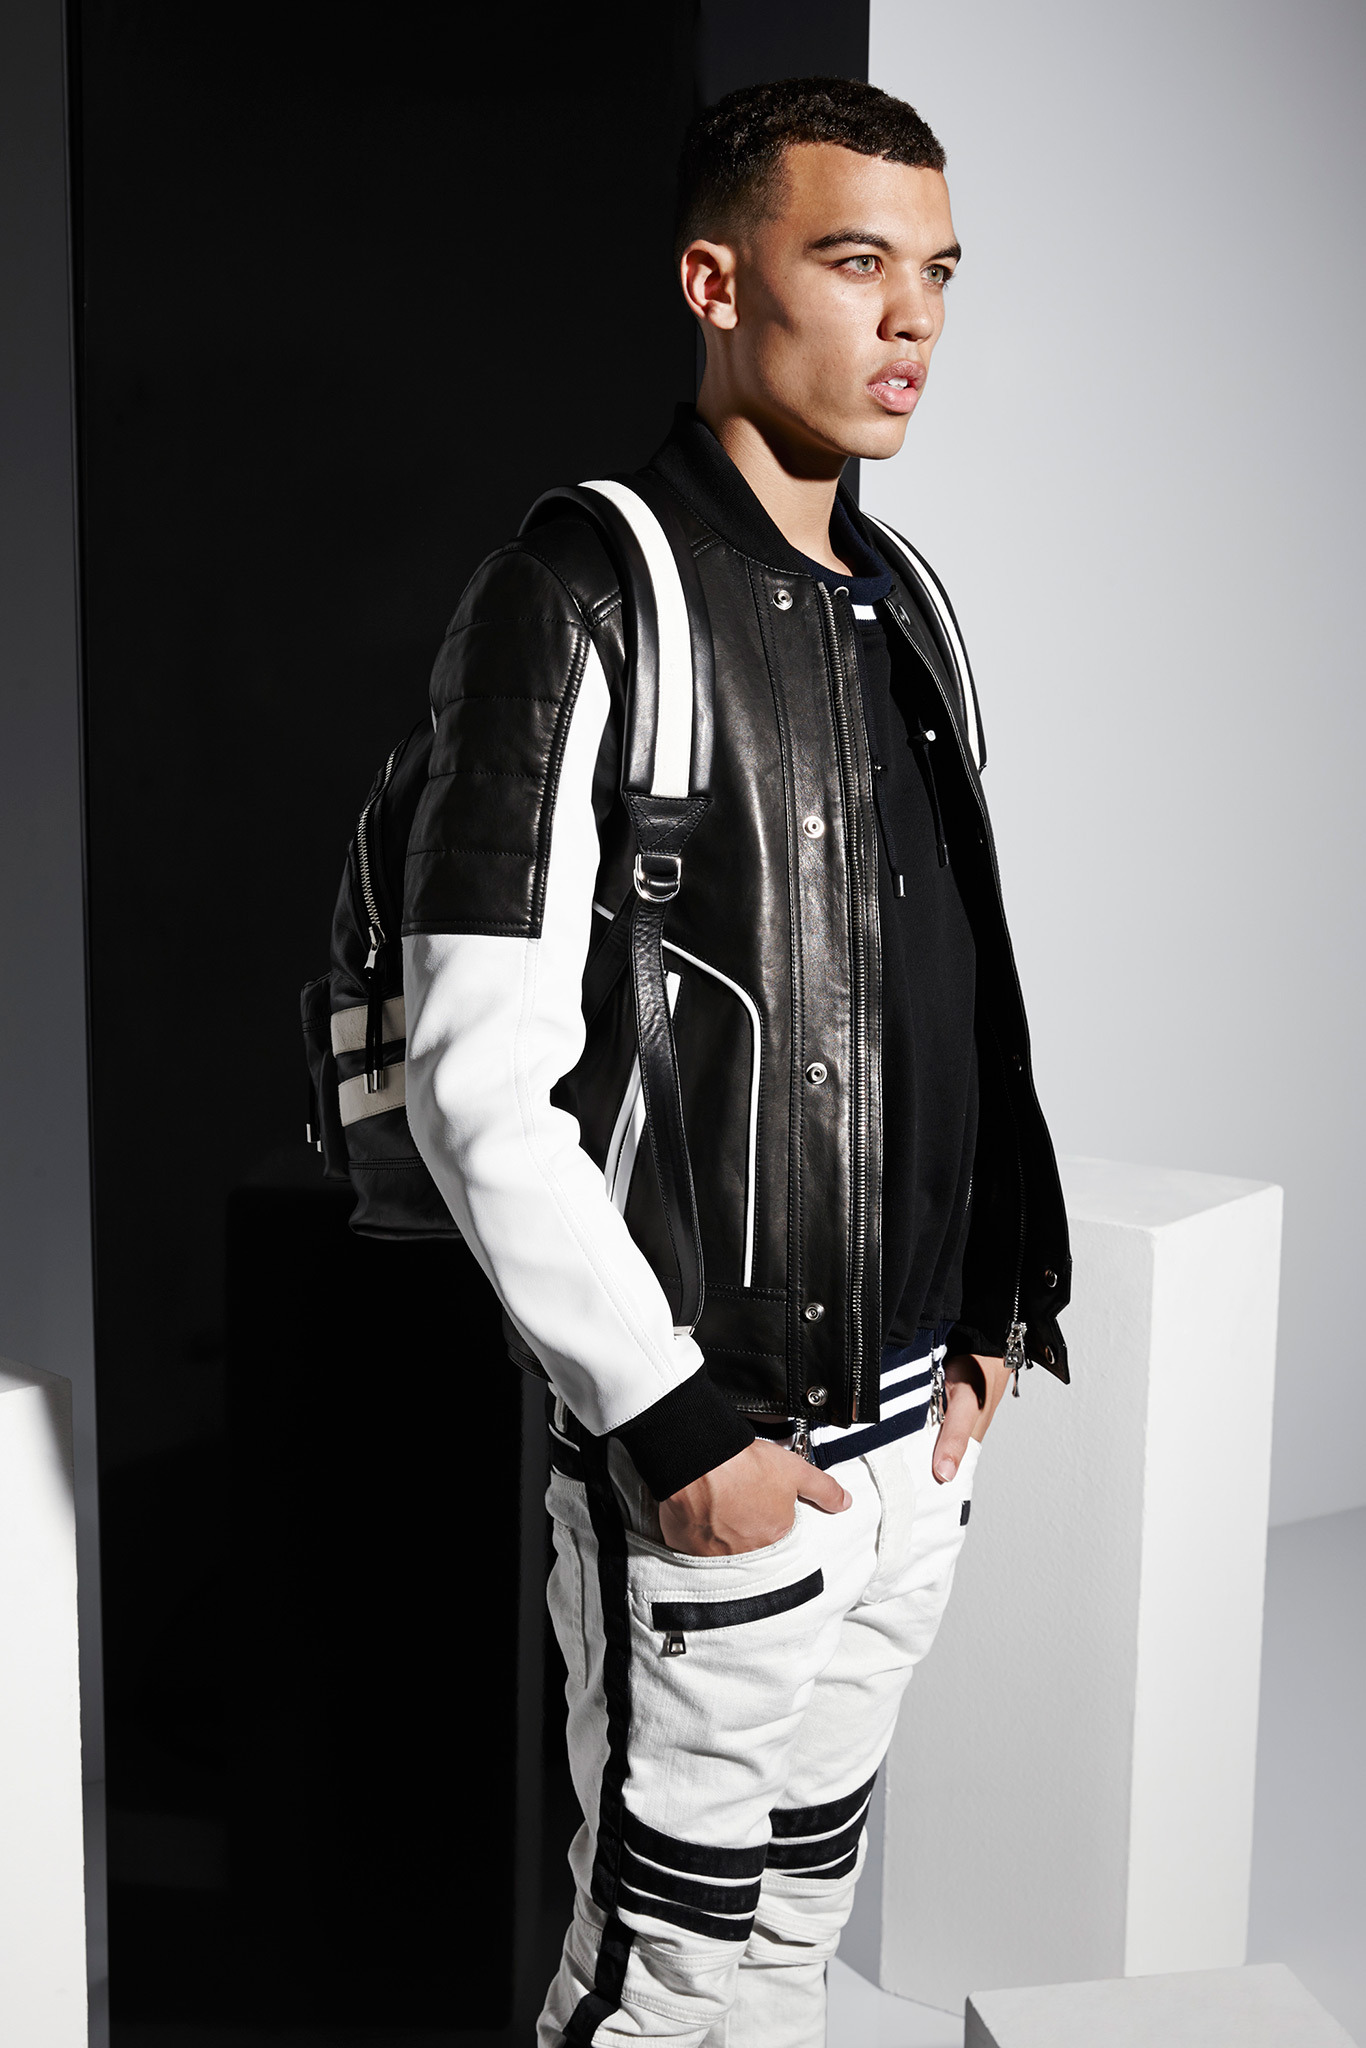 Dudley O'Shaughnessy | Balmain Spring 2015 (Photography: courtesy of Balmain via Style.com)